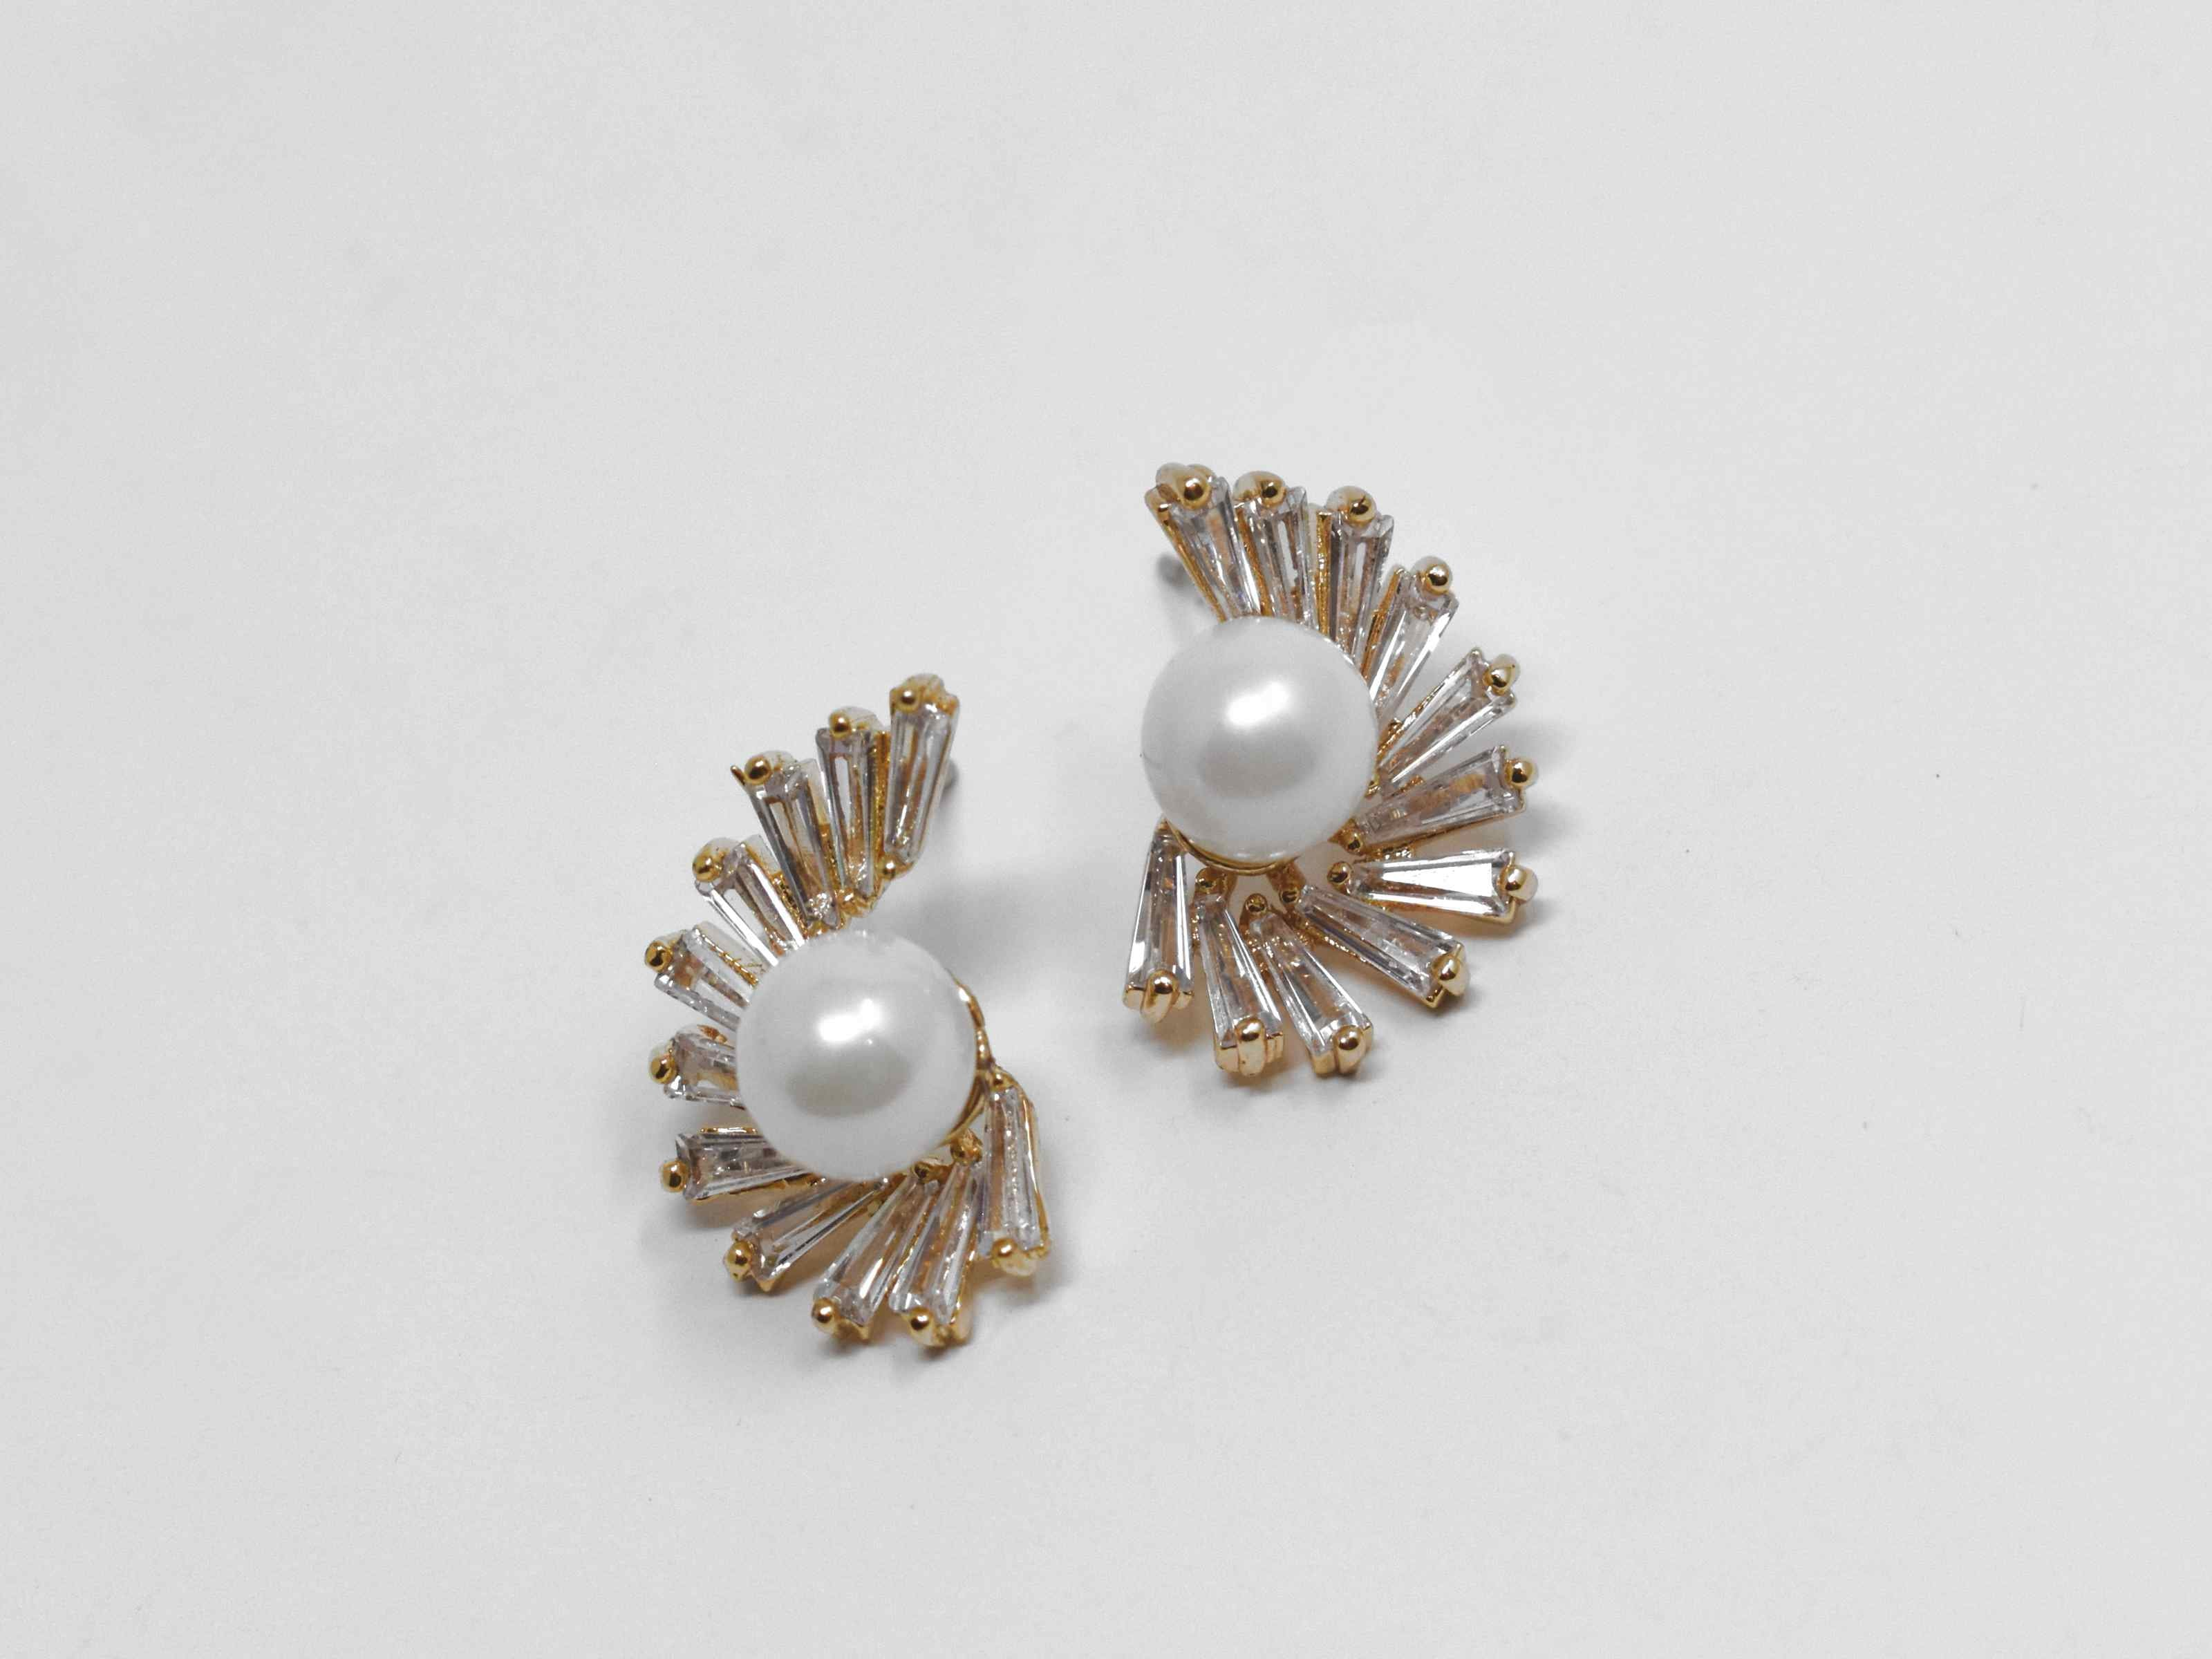 Our bouvardia earrings are a beautiful classic with a modern twist. These knob earrings have a pearl core adorned with cascading stones. They are 3/4 of an inch in length with a push back clasp.